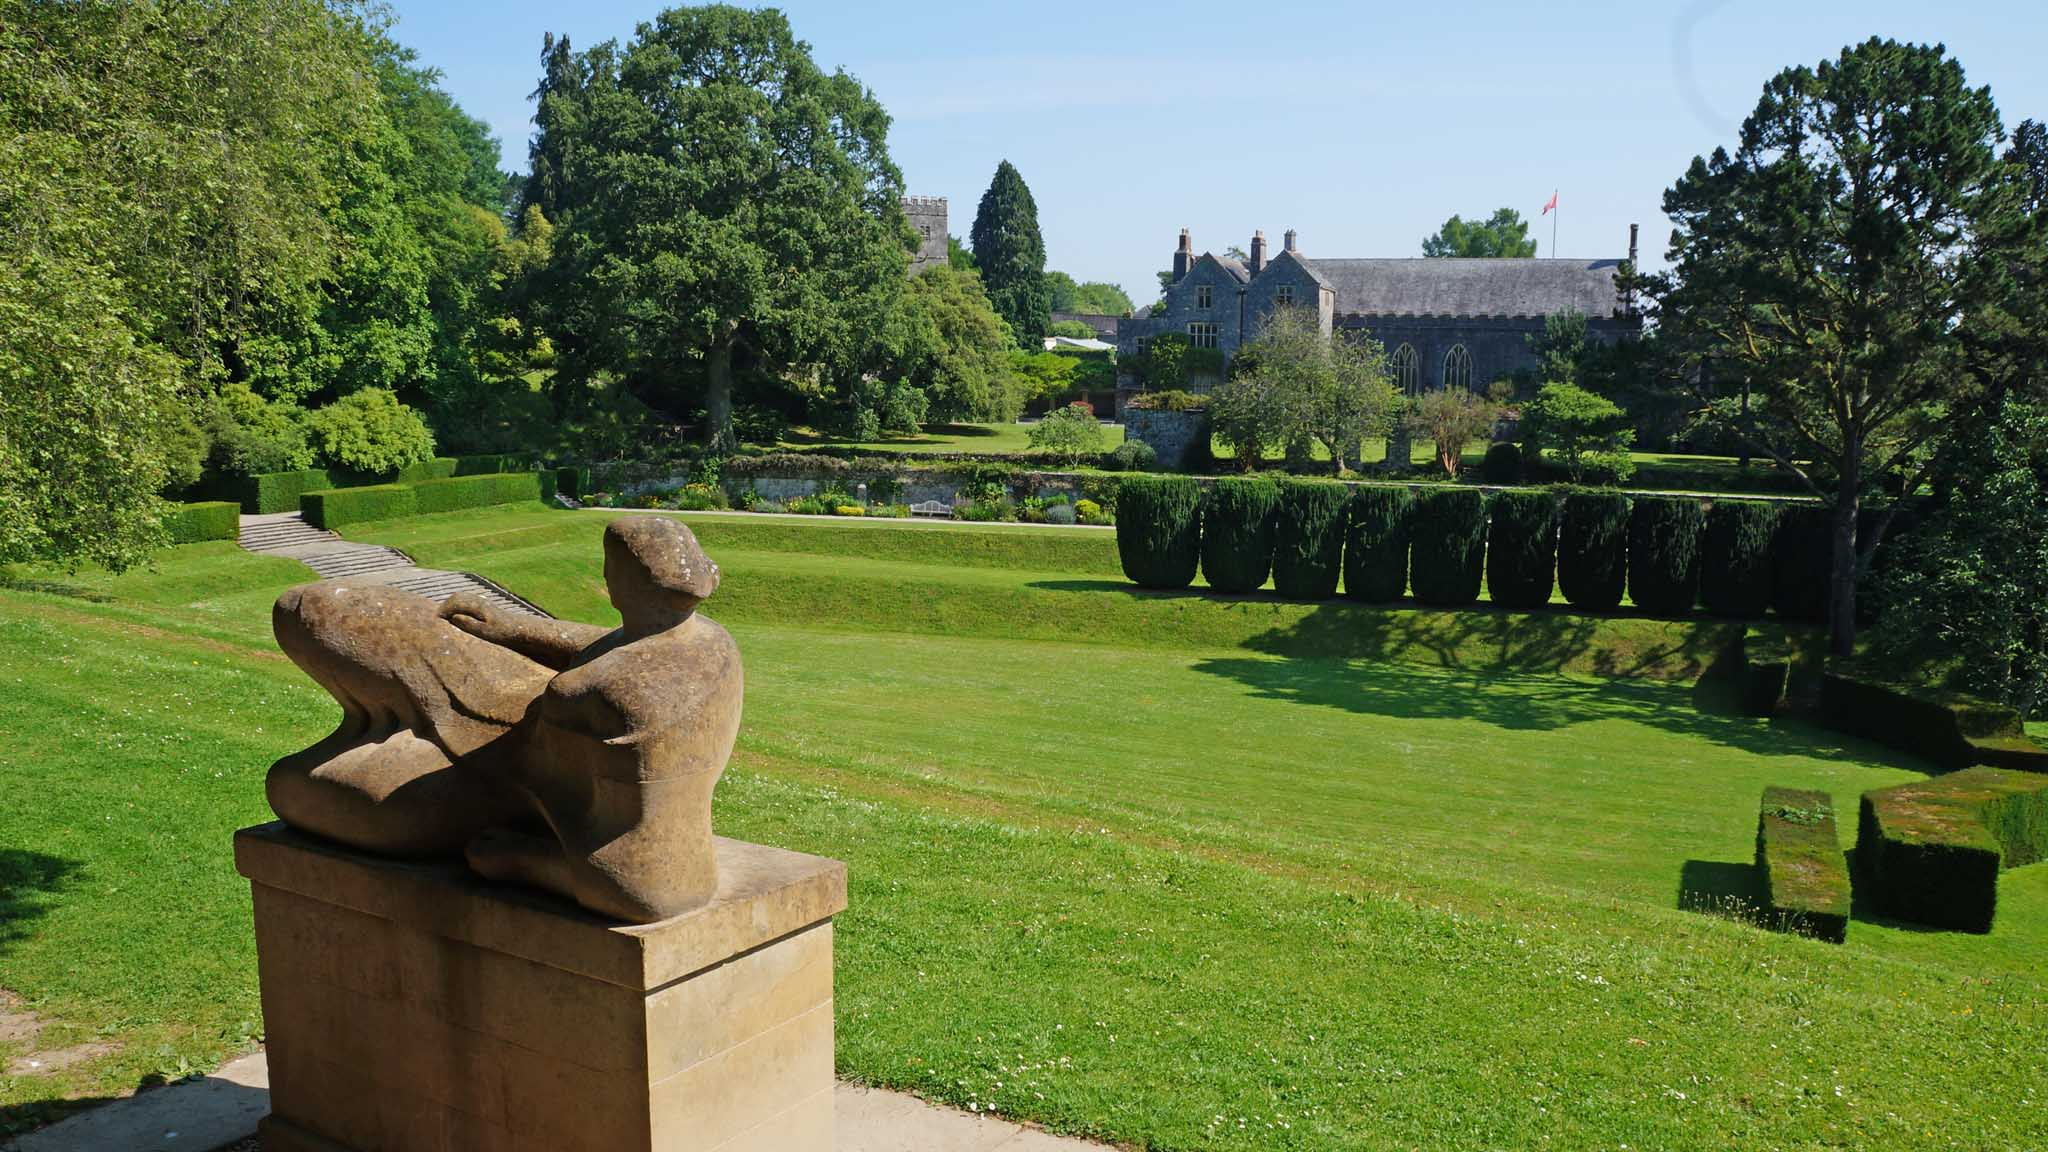 Dartington Hall's Tiltyard area, with Henry Moore's Reclining figure sculpture in the foreground and Great Hall in the background